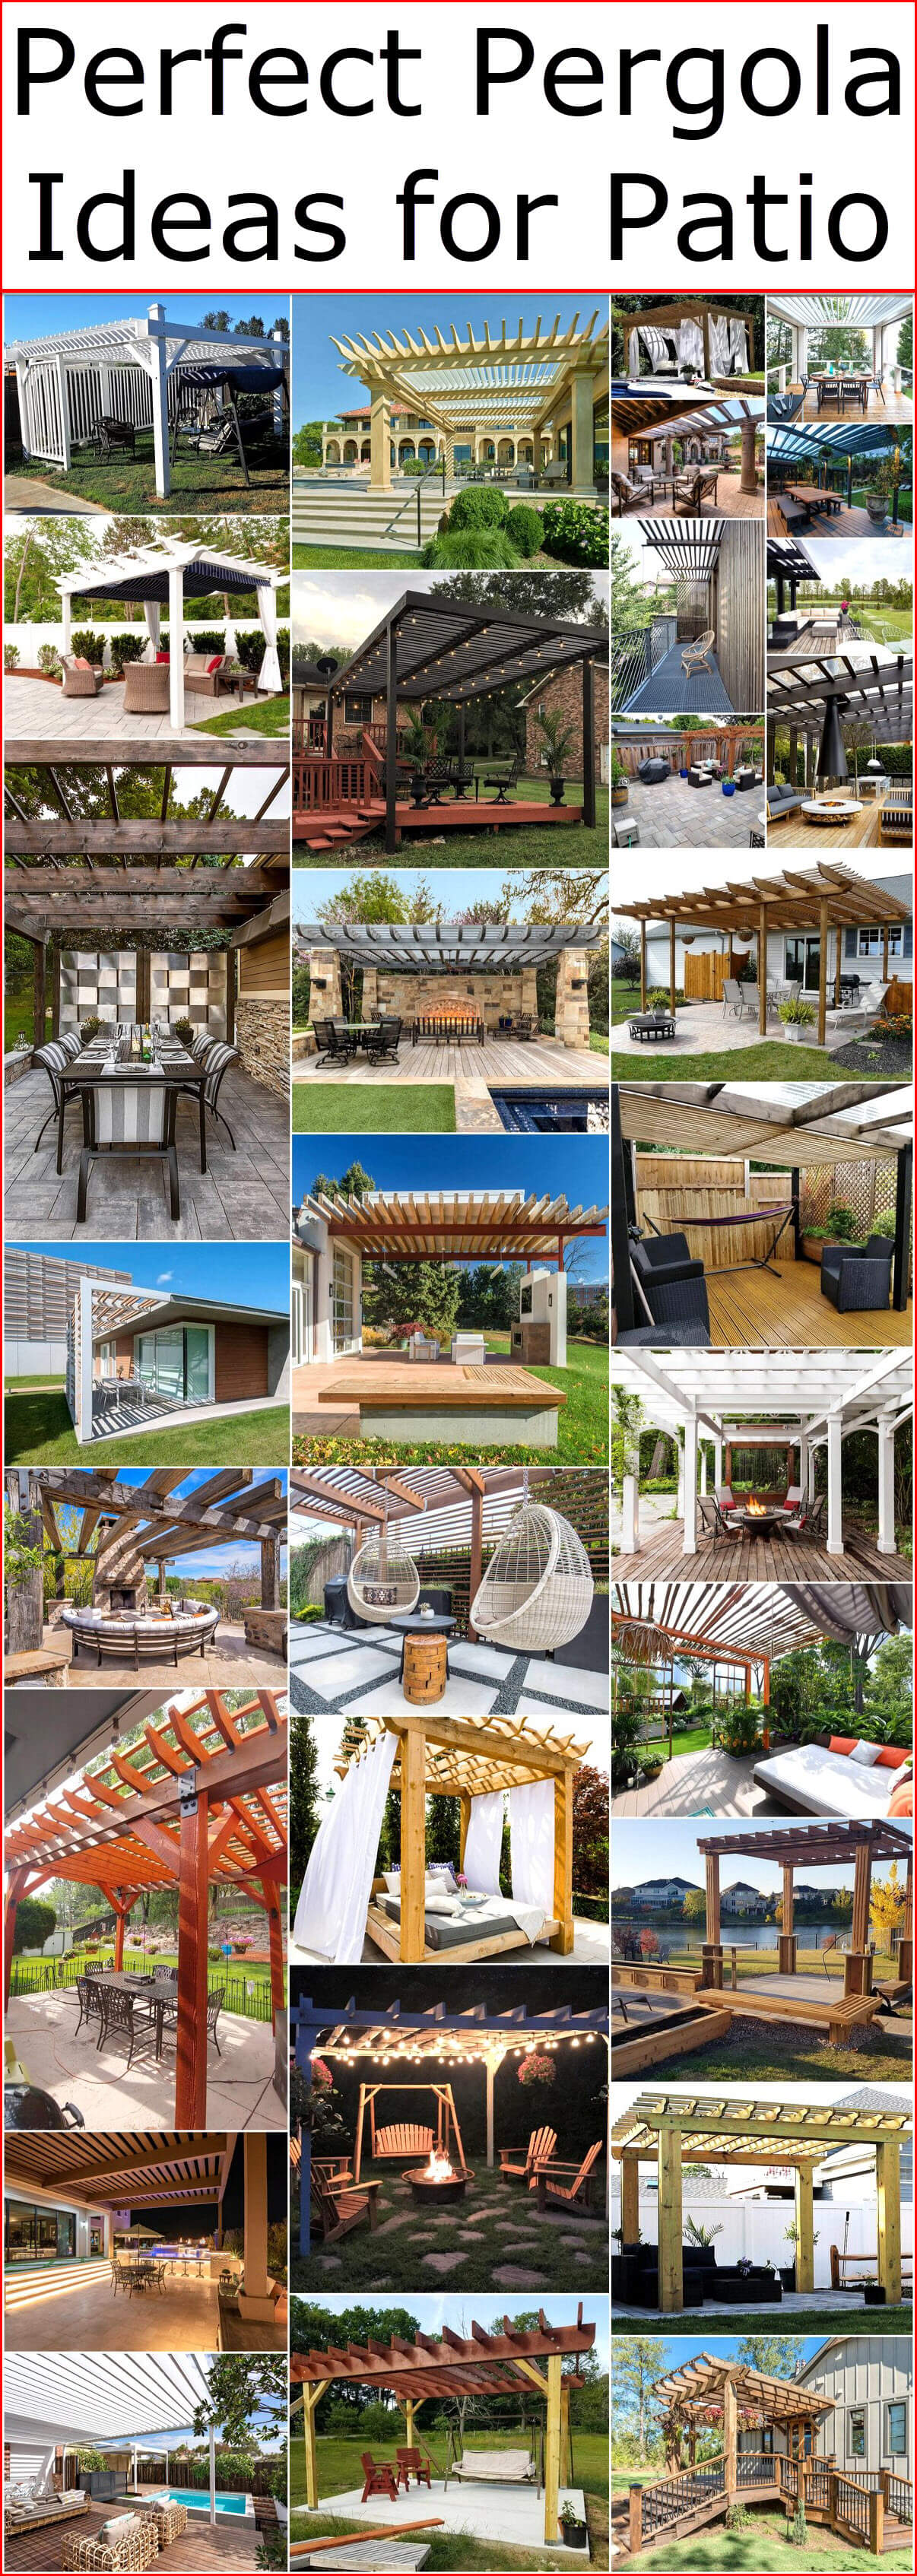 Perfect Pergola Ideas for Patio